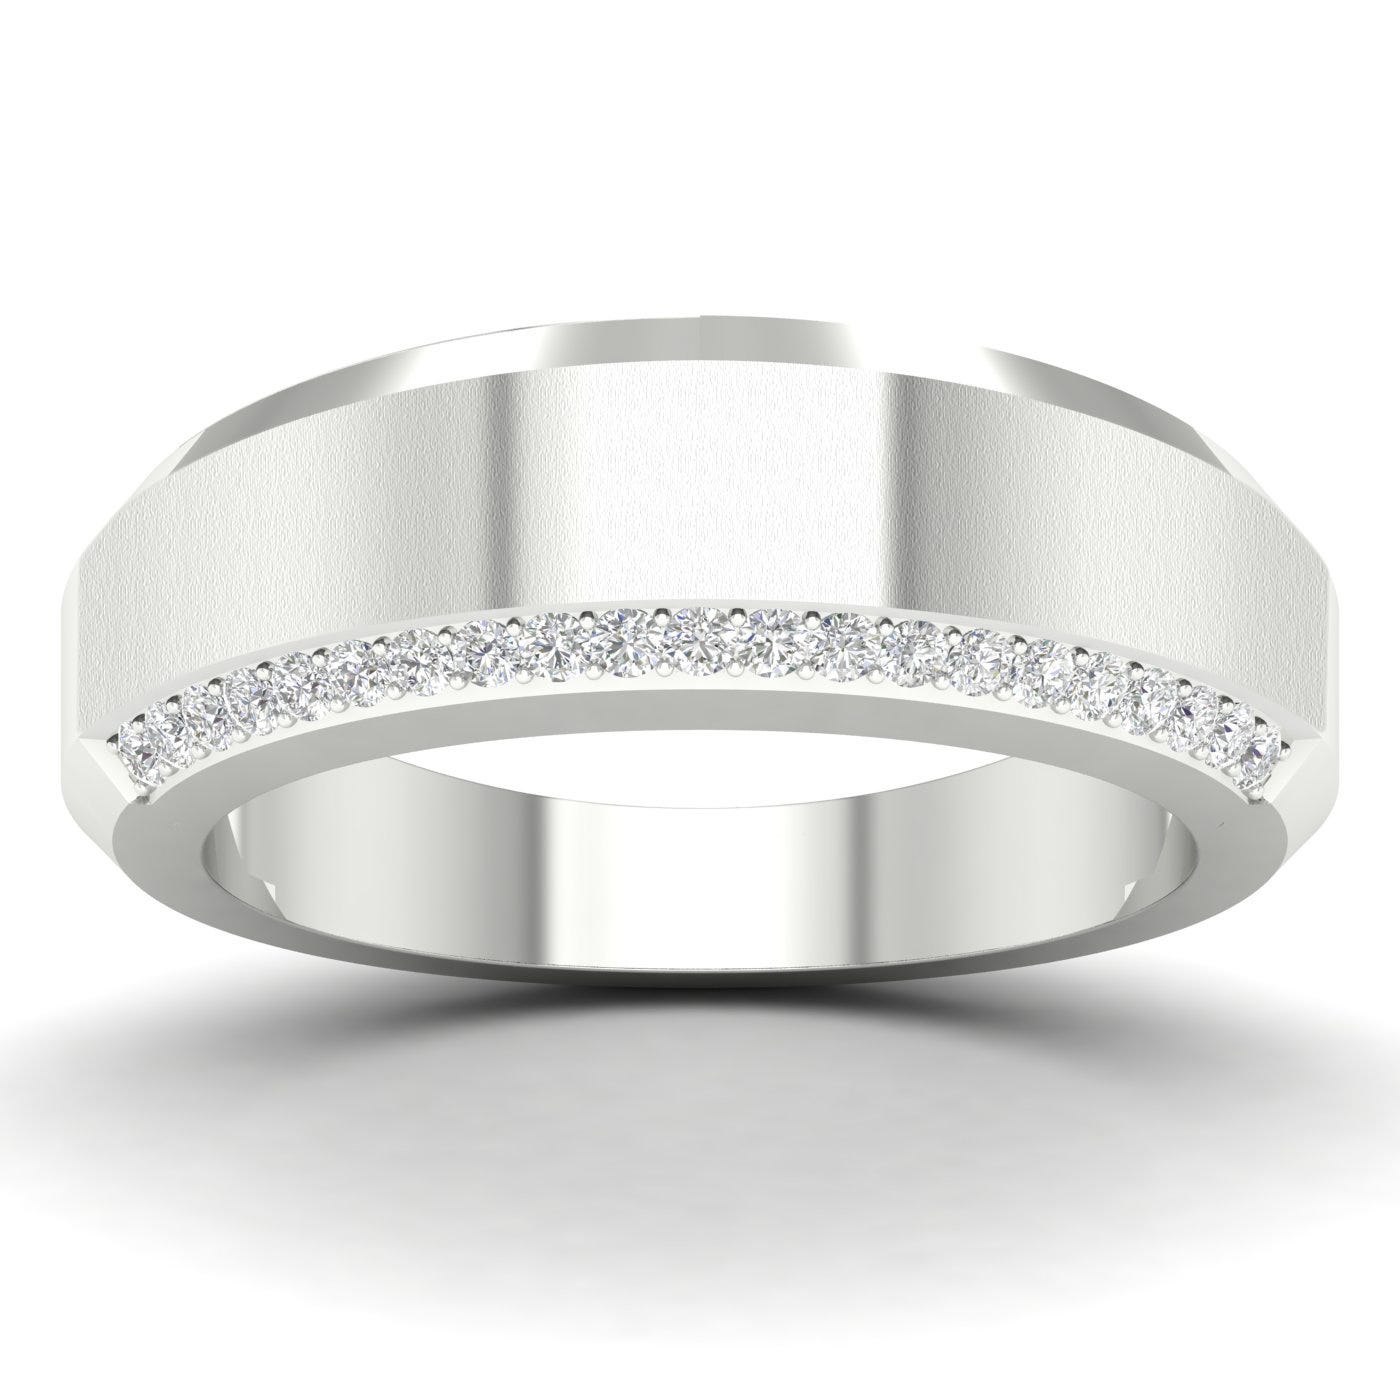 Gents Diamond Band in 10k White Gold